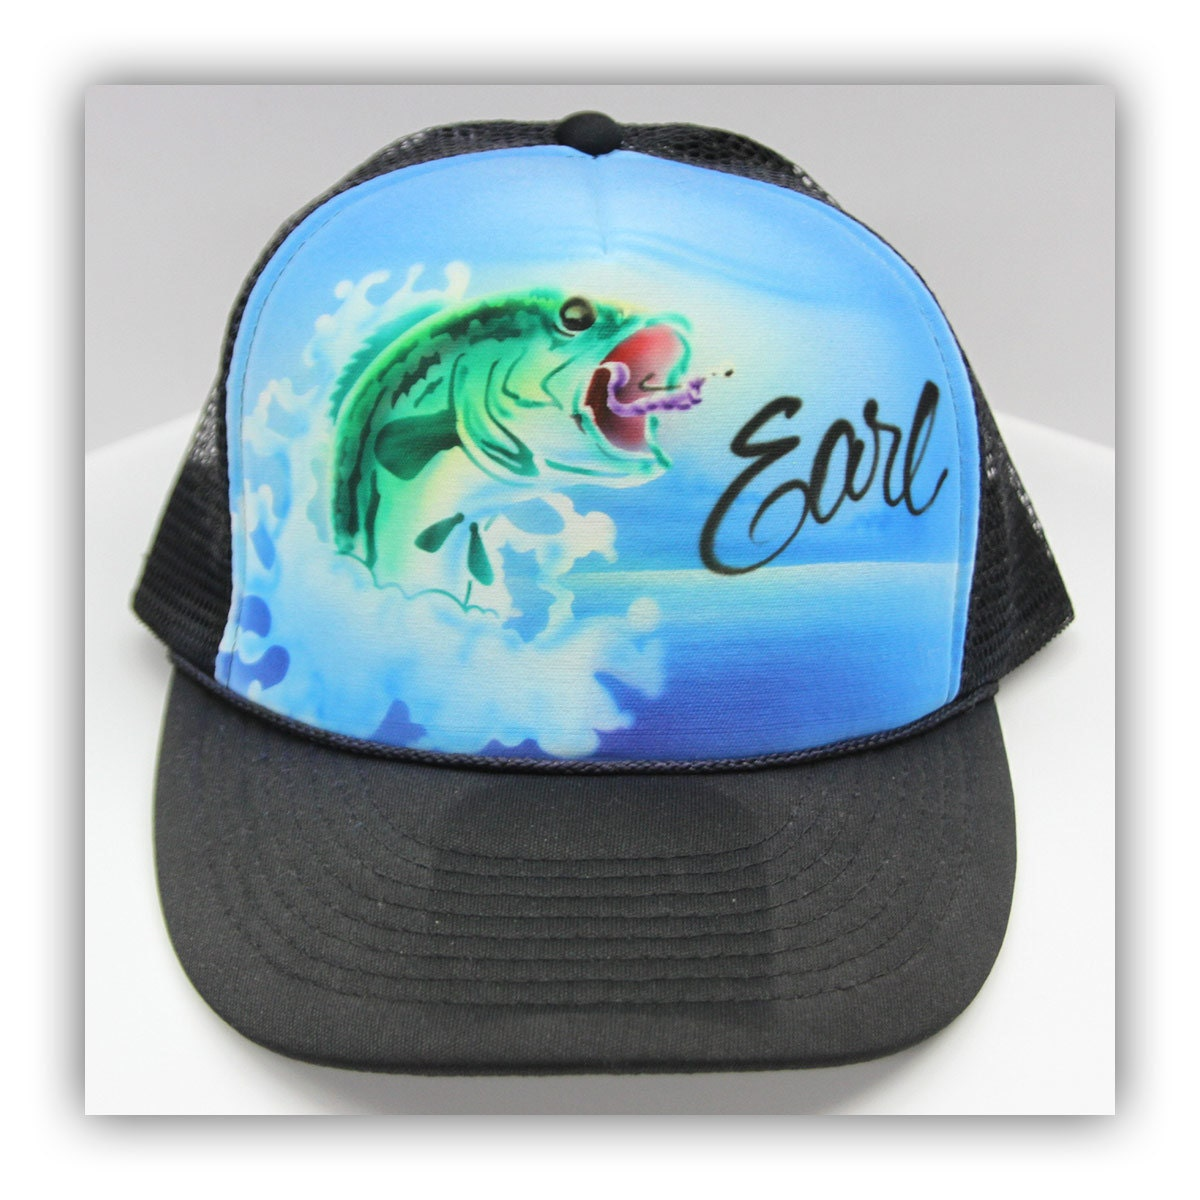 Airbrush fishing trucker hat airbrush fishing hat airbrush for Fishing trucker hats